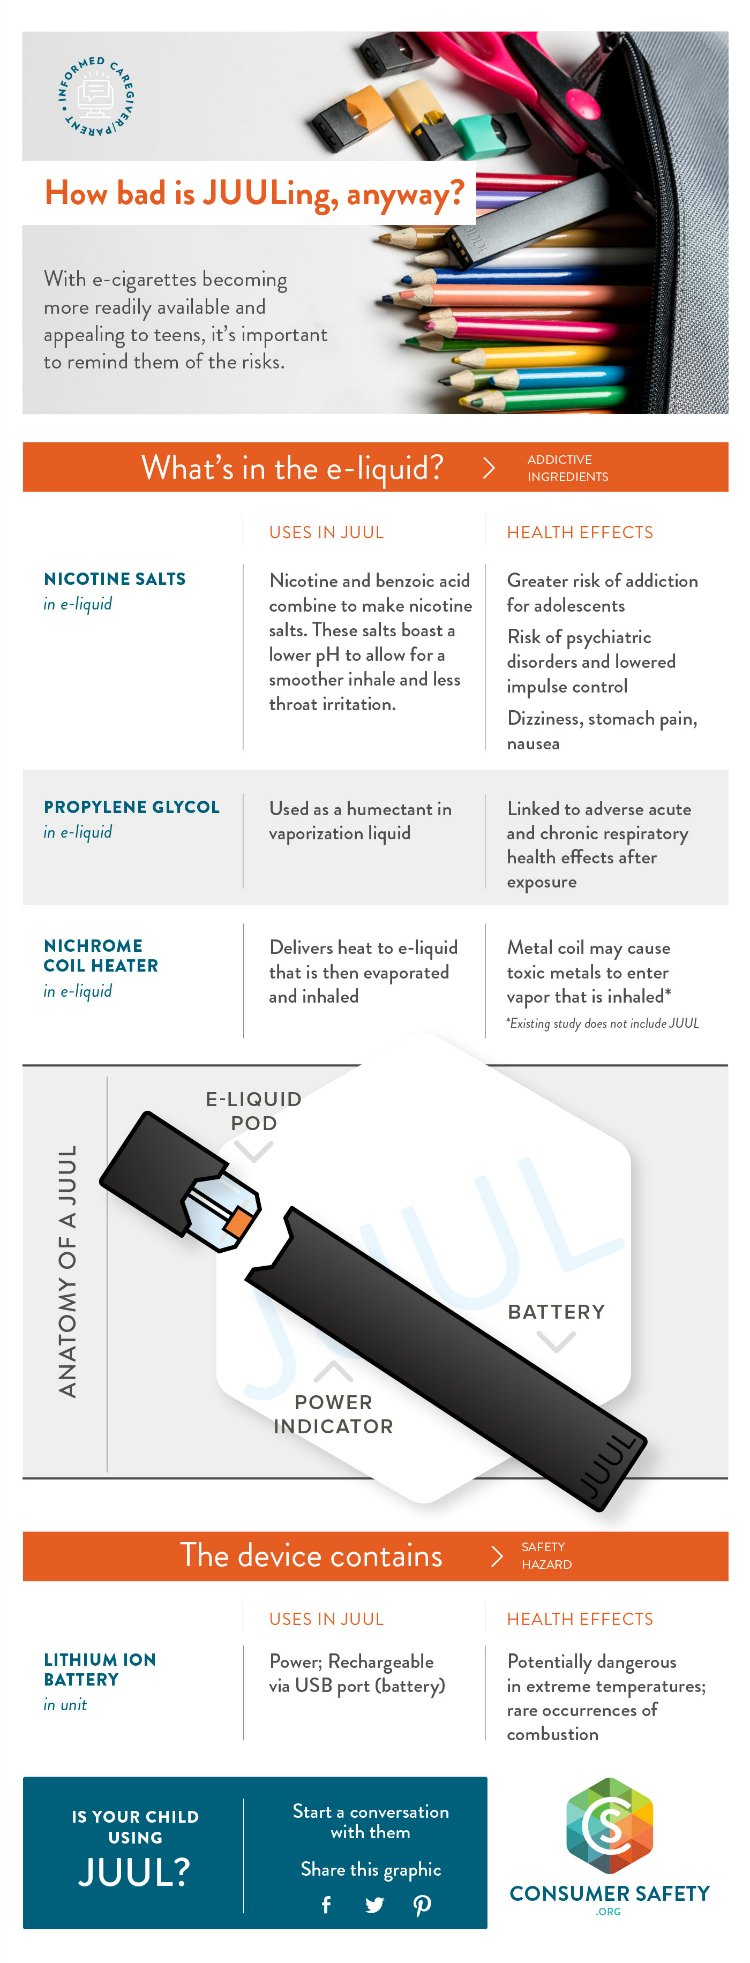 While the CDC confirms that from 2011 to 2017, cigarette smoking declined among middle and high school students, a dangerous new trend is on the increase and rapidly taking the place of traditional cigarettes as a huge health concern for youth - JUUL e-cigarettes (also known as vape). JUUL e-cigarettes are being marked as safer and cheaper than traditional cigarettes, but they are far from harmless.